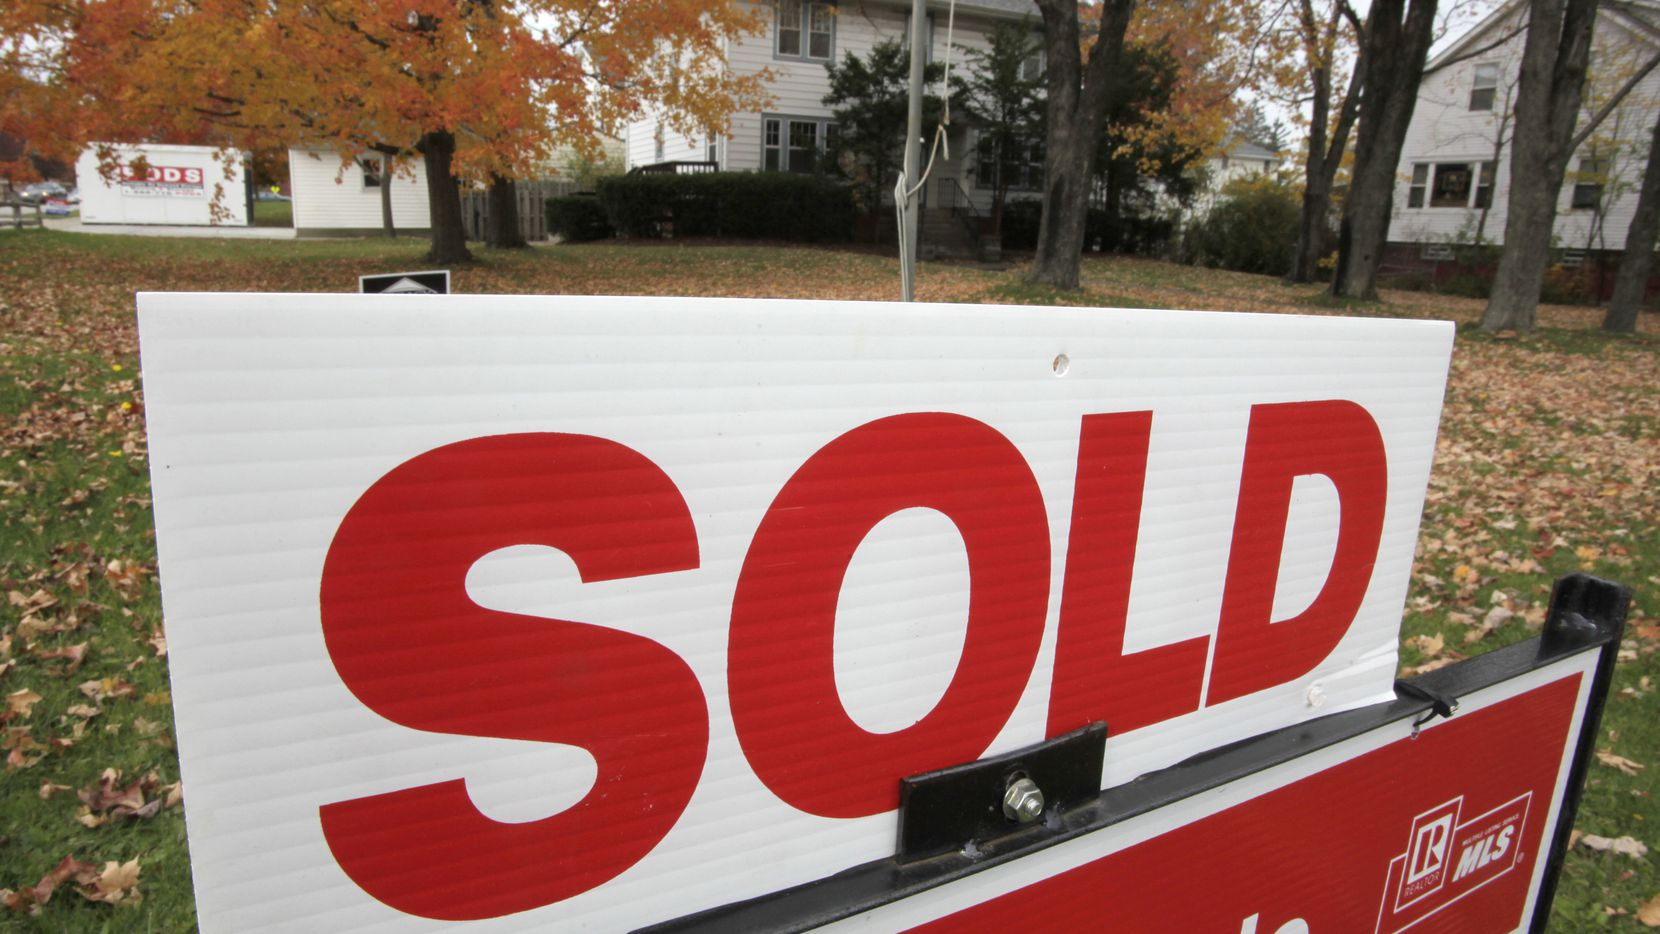 Nationwide home prices were up by the greatest rate in six years.